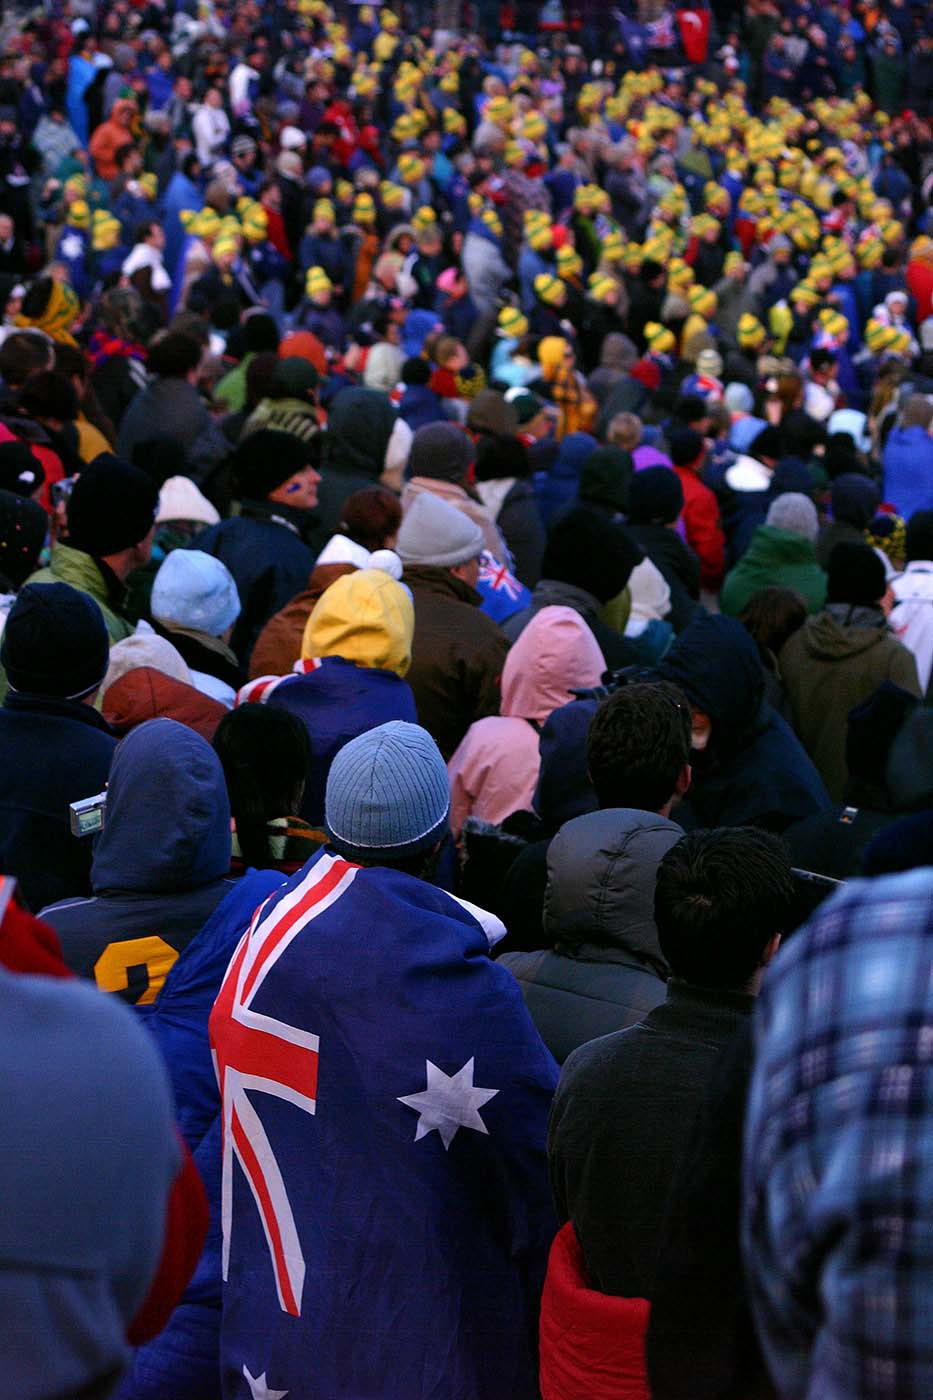 A colour photograph of a large crowd. Many people are wearing green and gold beanies on their head and several have an Australian flag draped around their shoulders. - click to view larger image